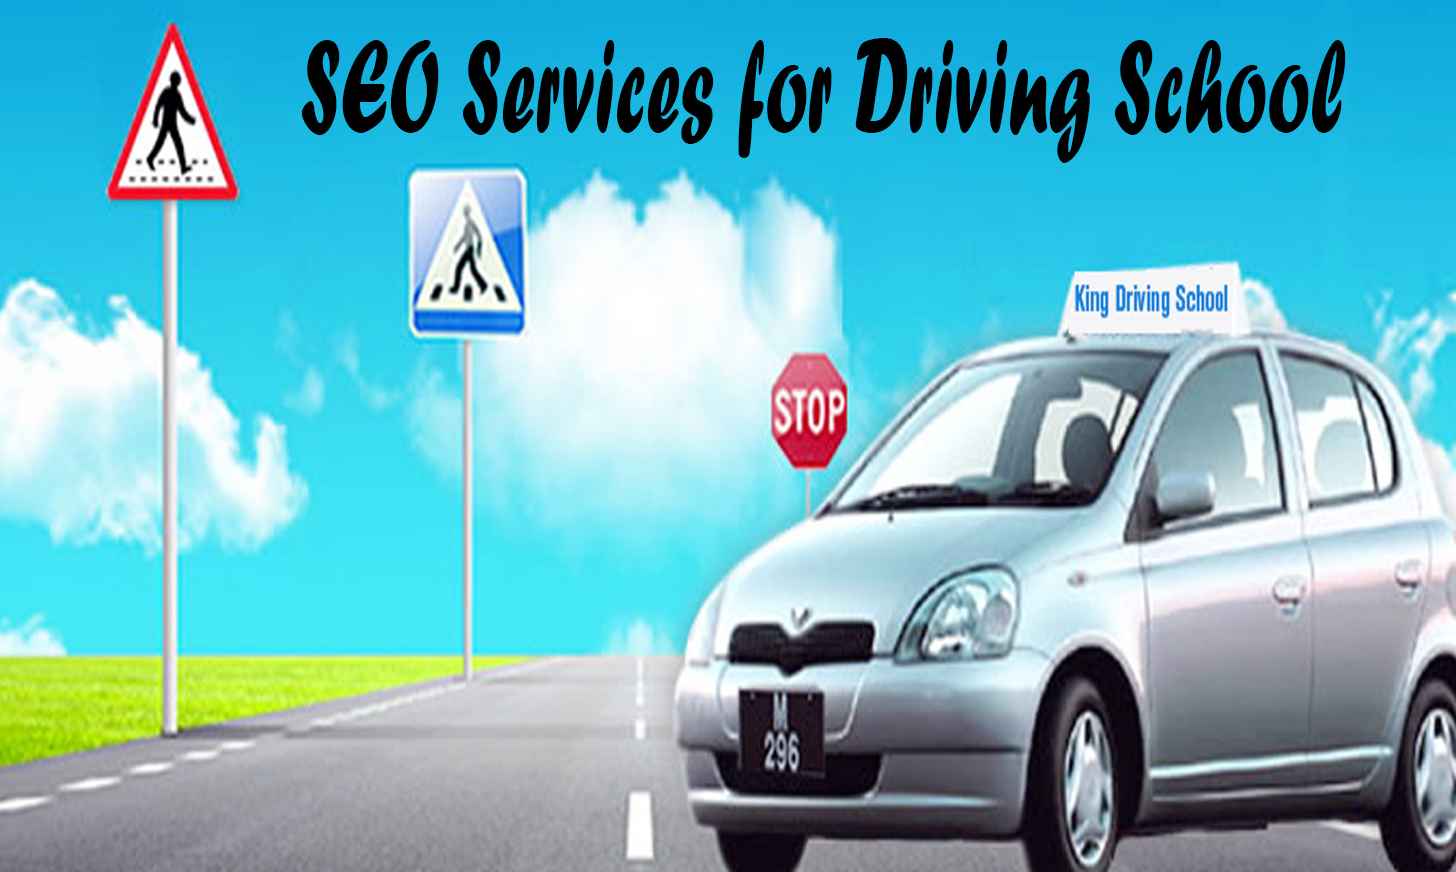 SEO Services for Driving School